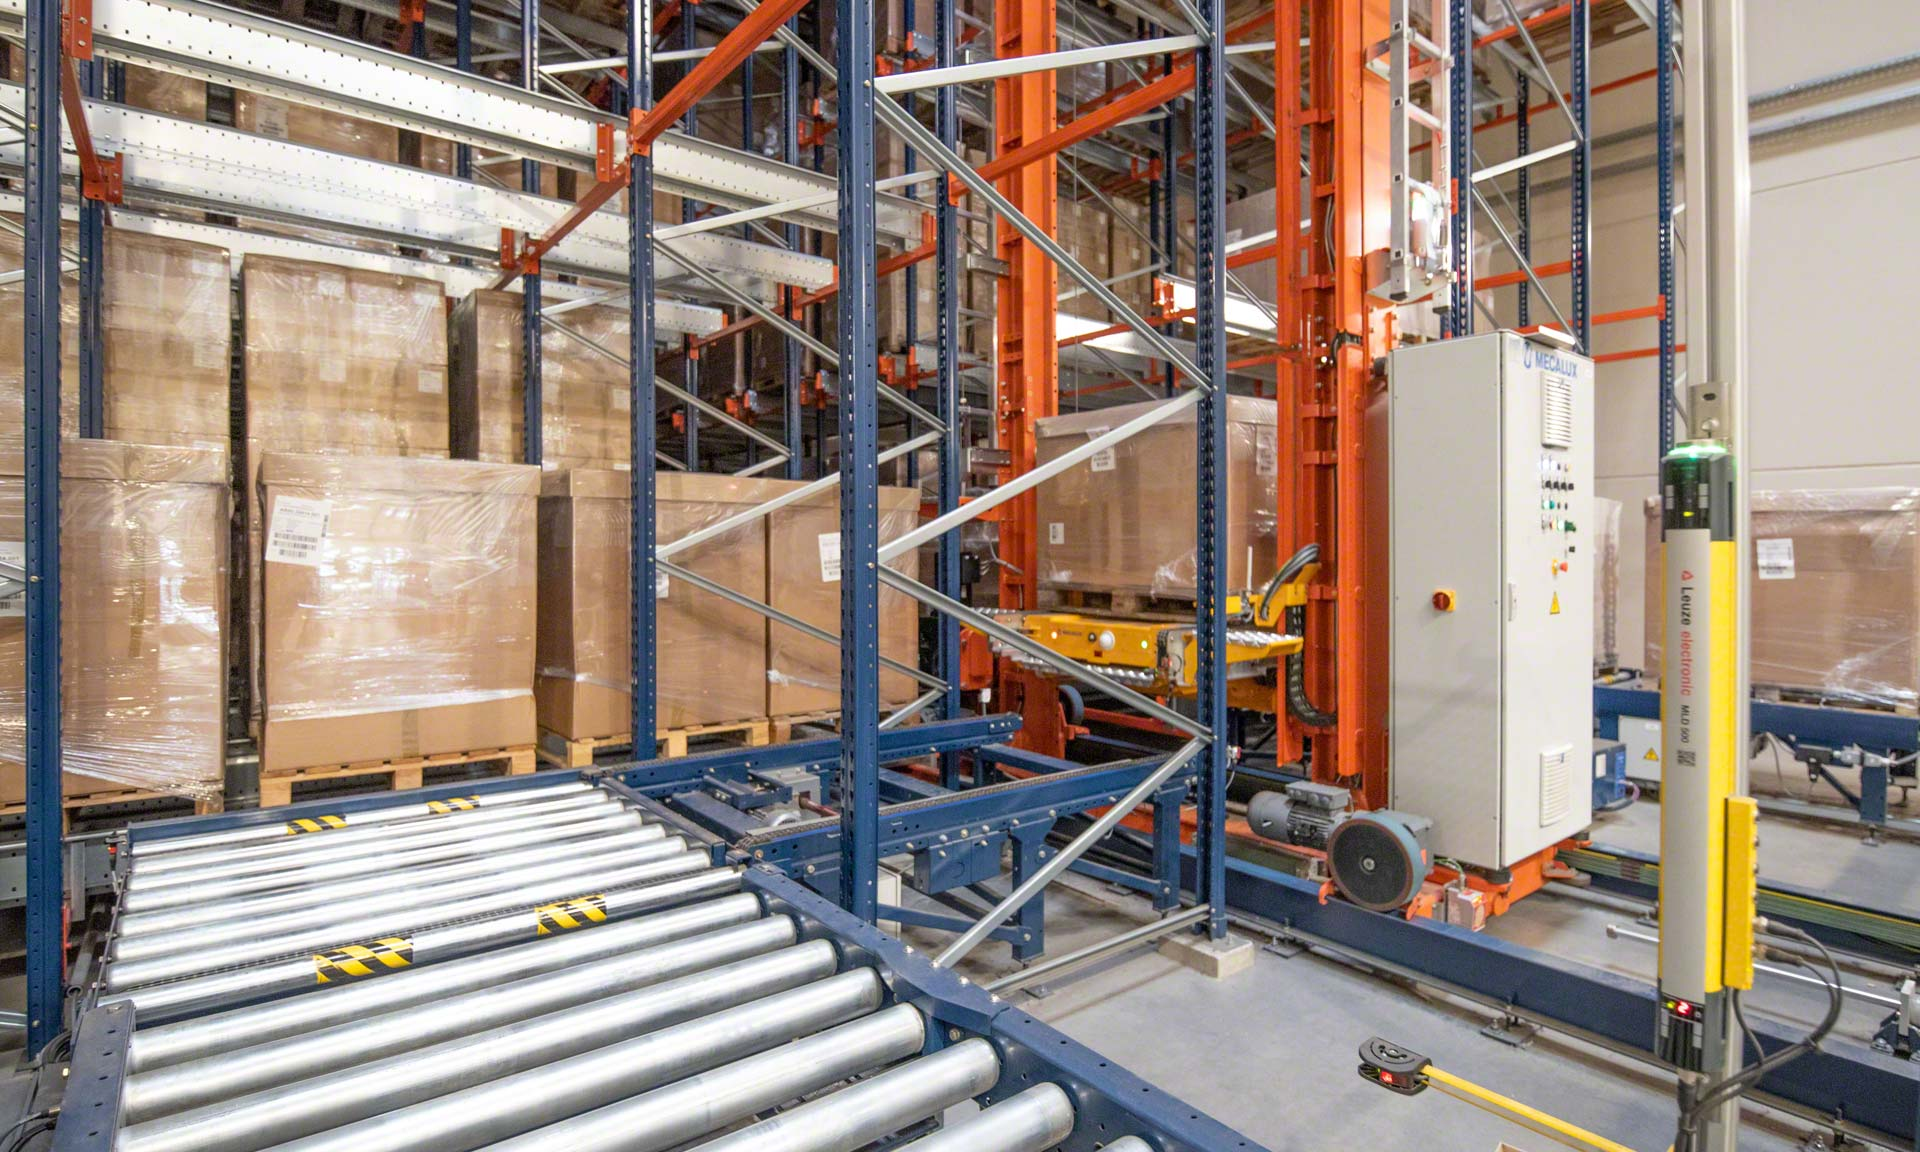 Thermoforming ideas in step with automation